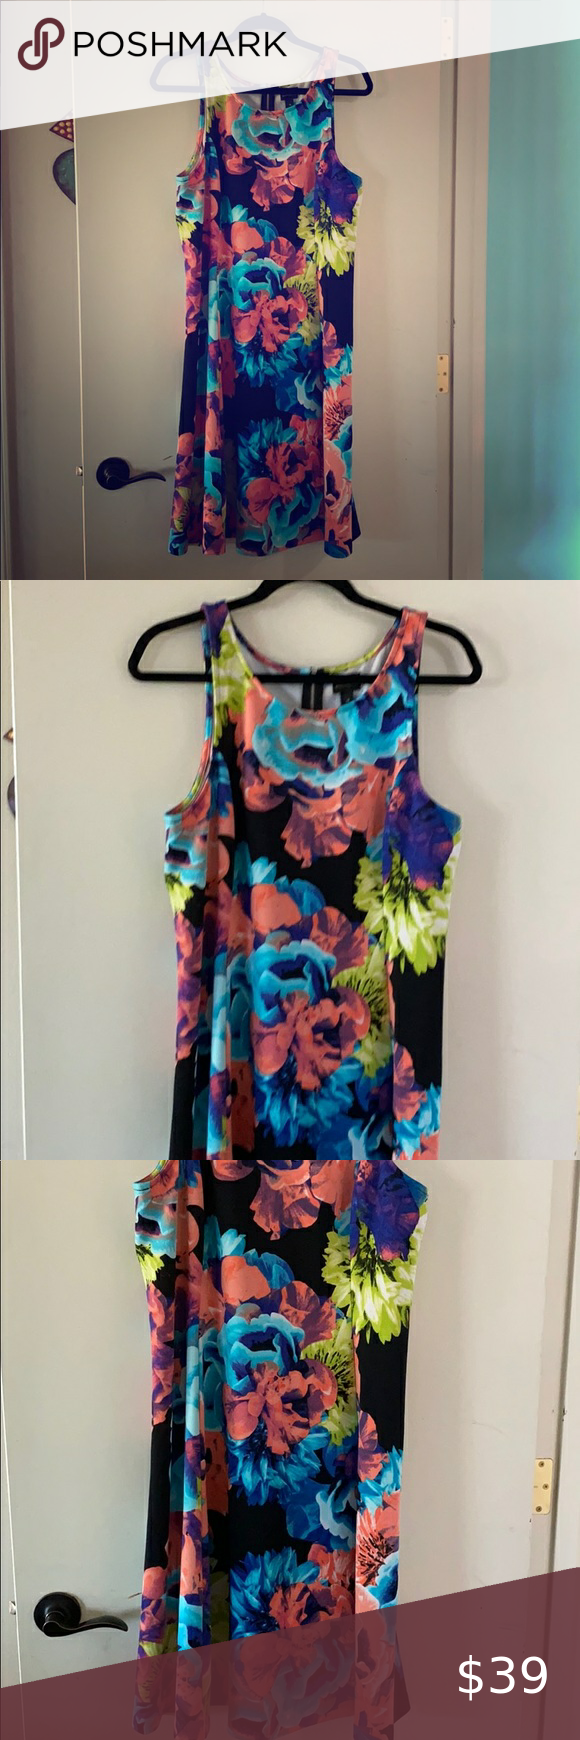 Beautiful Floral Spring Summer Dress Size 16 The Fit On This Dress Is So Amazing Very Flattering The Des Summer Dresses Size 16 Dresses Spring Summer Dress [ 1740 x 580 Pixel ]